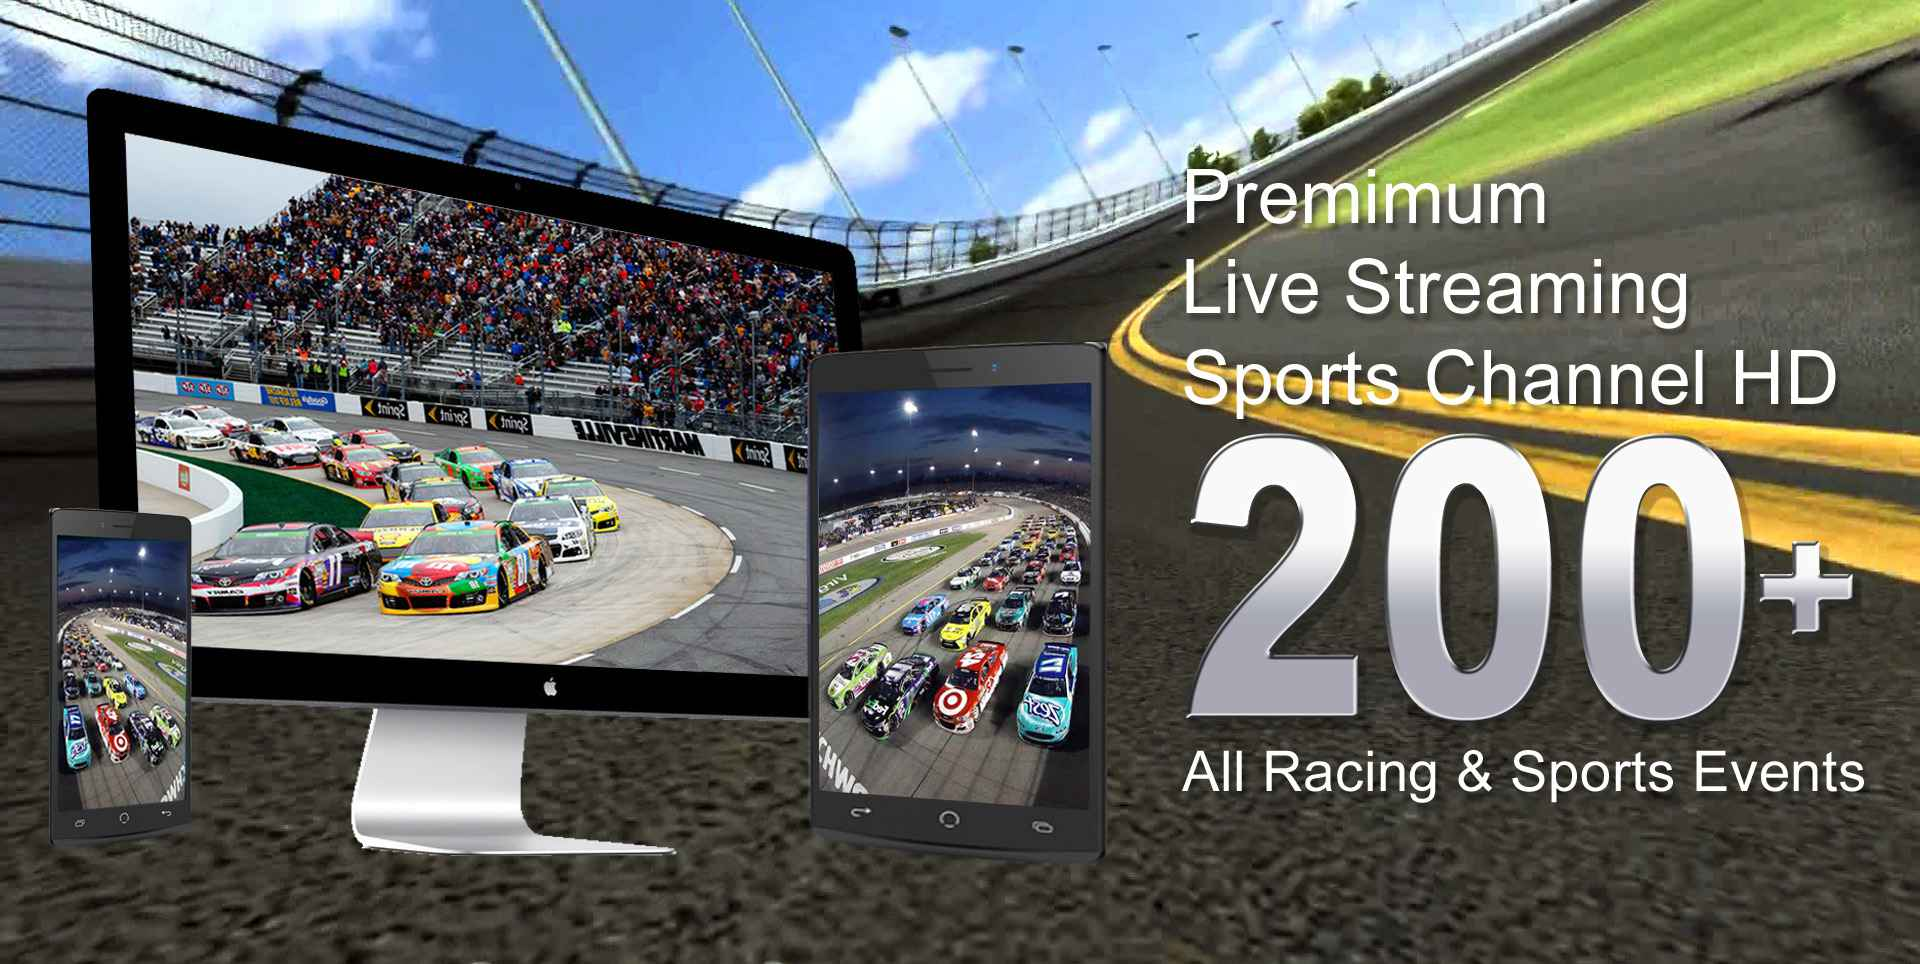 2015 Camping World 500 Race Live